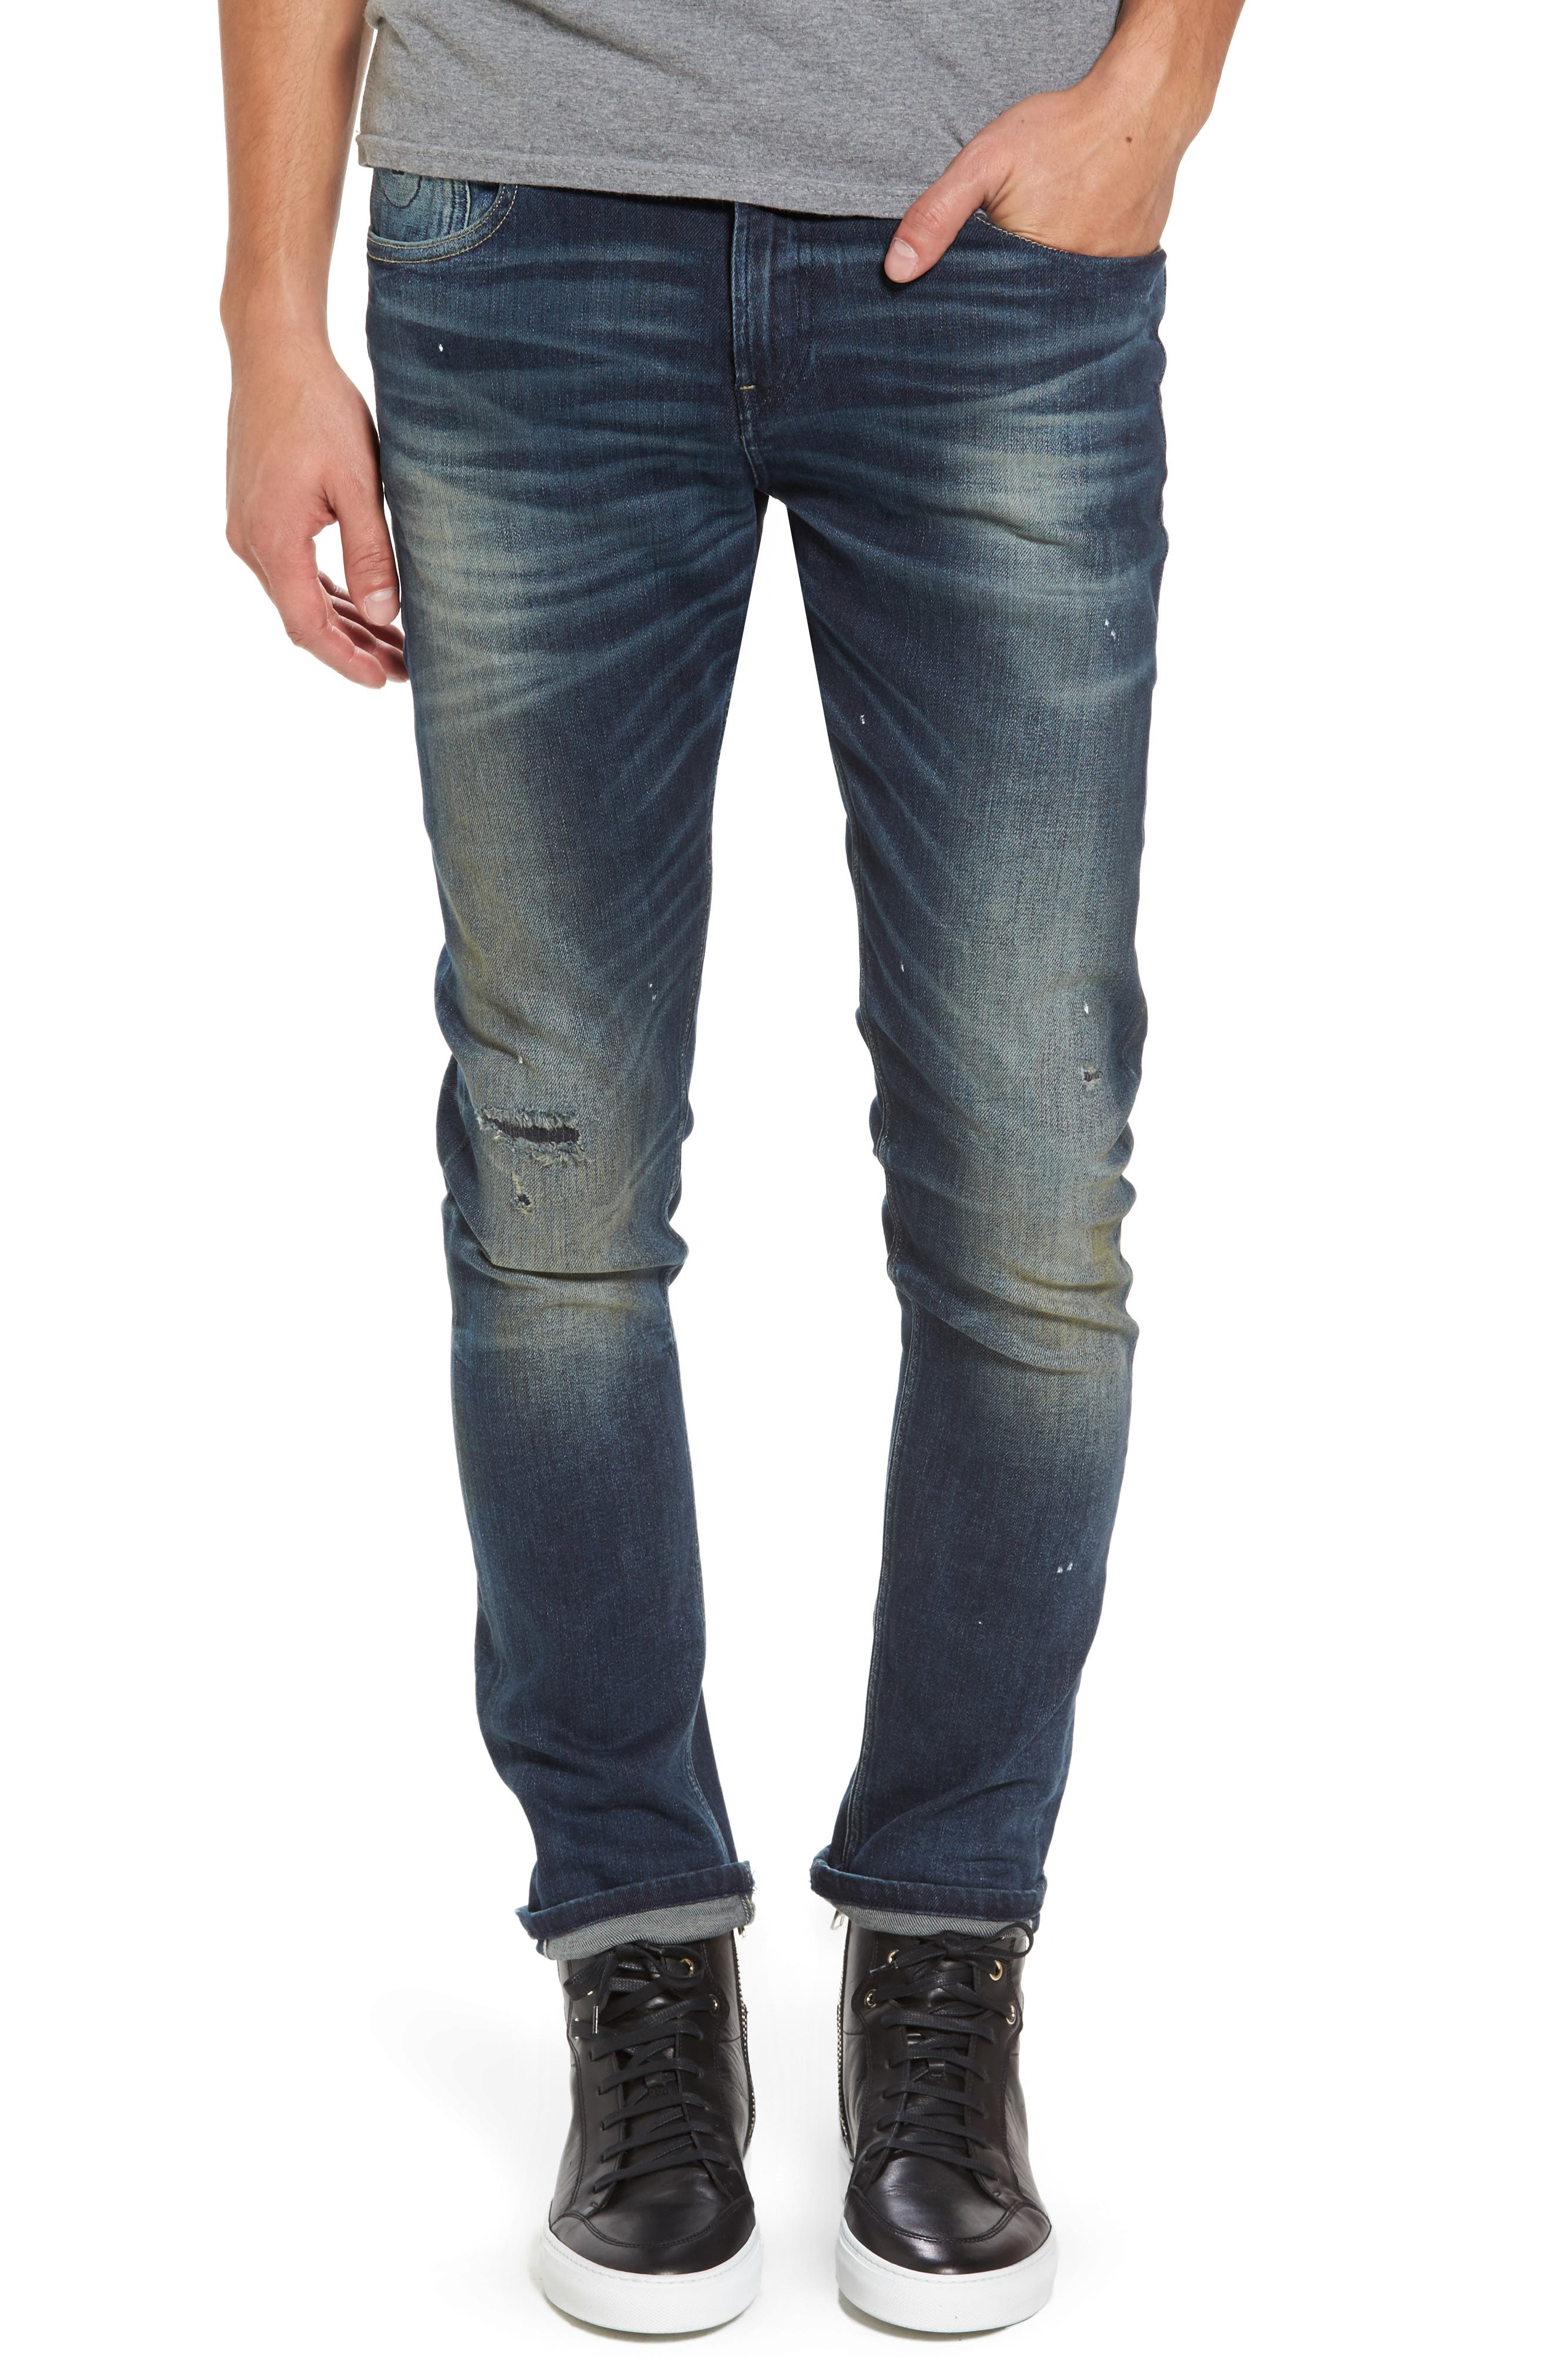 Scotch & Soda Lot 22 Slim Fit Jeans (Going for Gold)